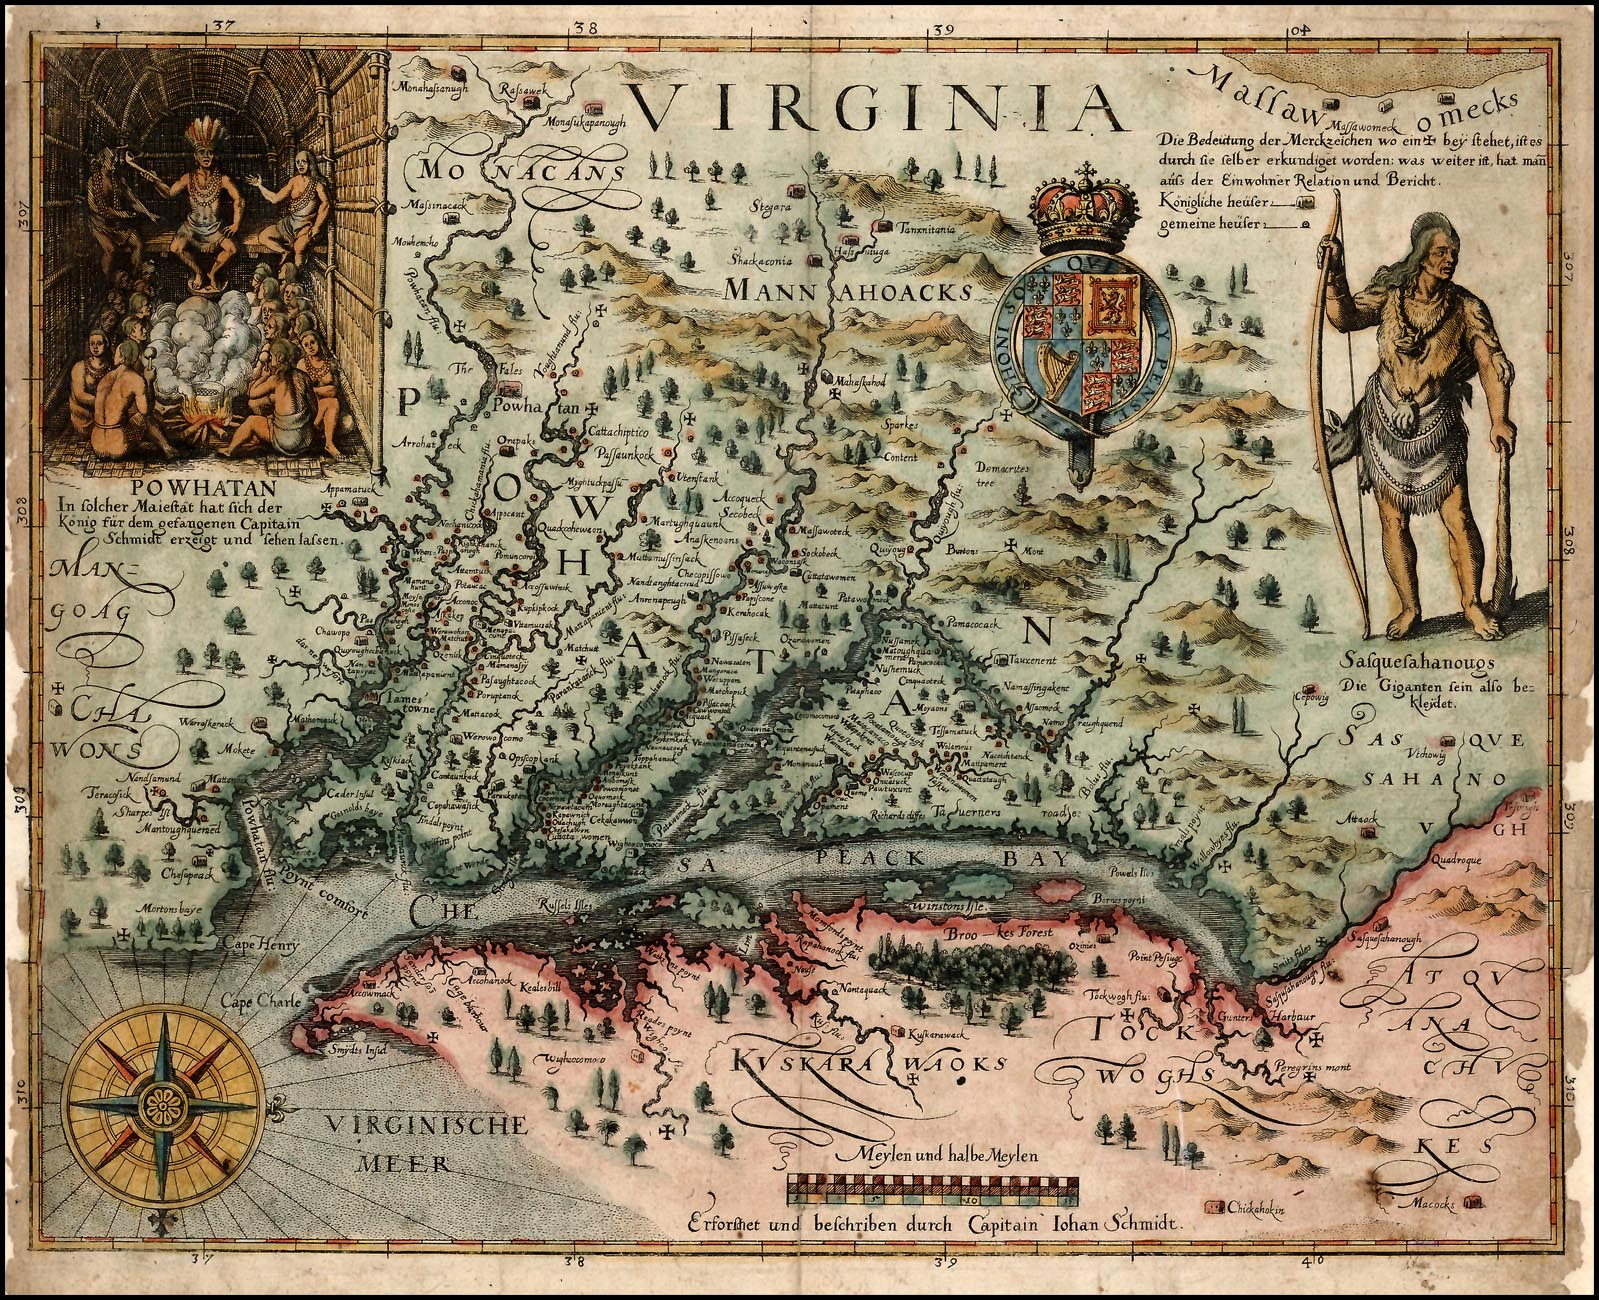 recreating history of english exploration in exchange between john smith and powhatan written from a Perhaps not surprisingly, in smith's own recounting of his adventures, powhatan offers him land, not women, in exchange for two great gunnes and a gryndstone (smith 163) [13] as smith temporarily exits the story, john rolfe enters, bringing with him an additional dose of sentimentalism.